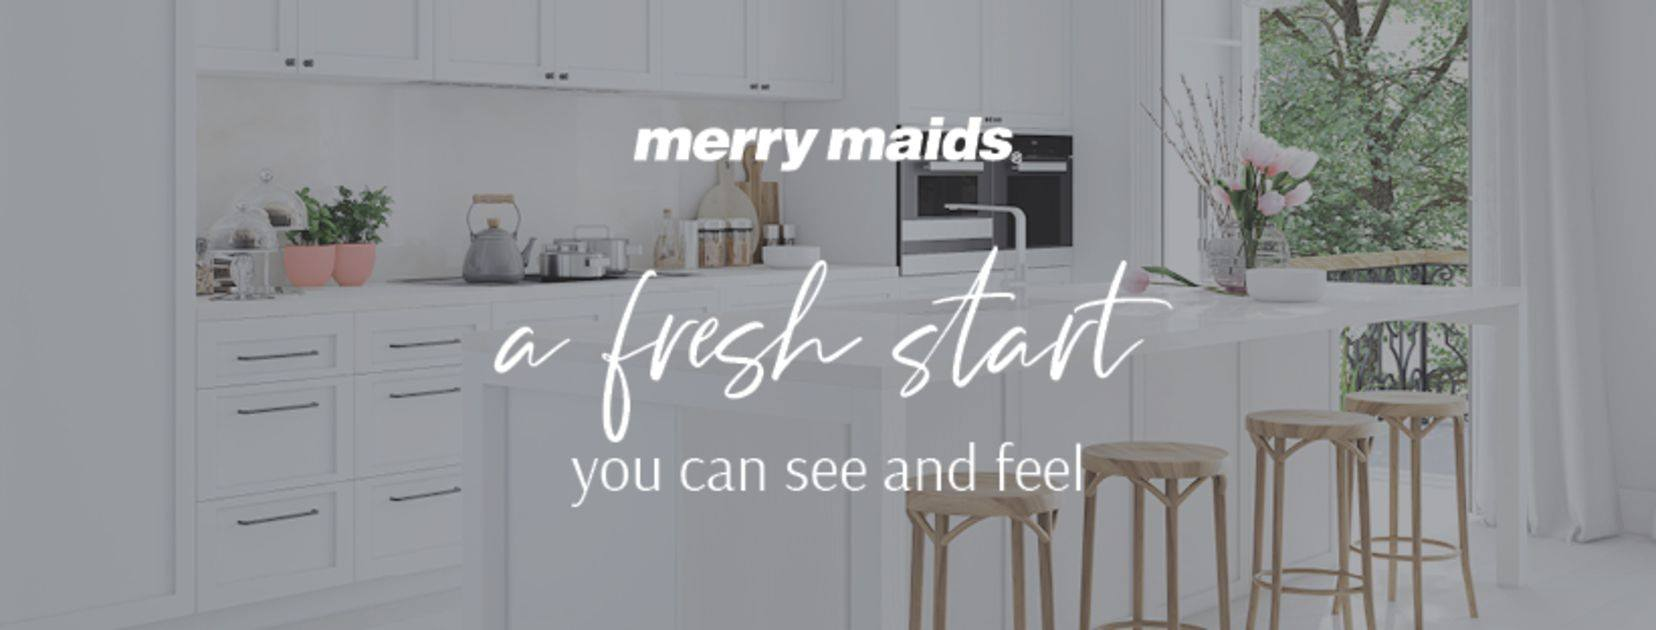 South Dakota's Top Rated Local® House Cleaning Companies Award Winner: Merry Maids of Rapid City